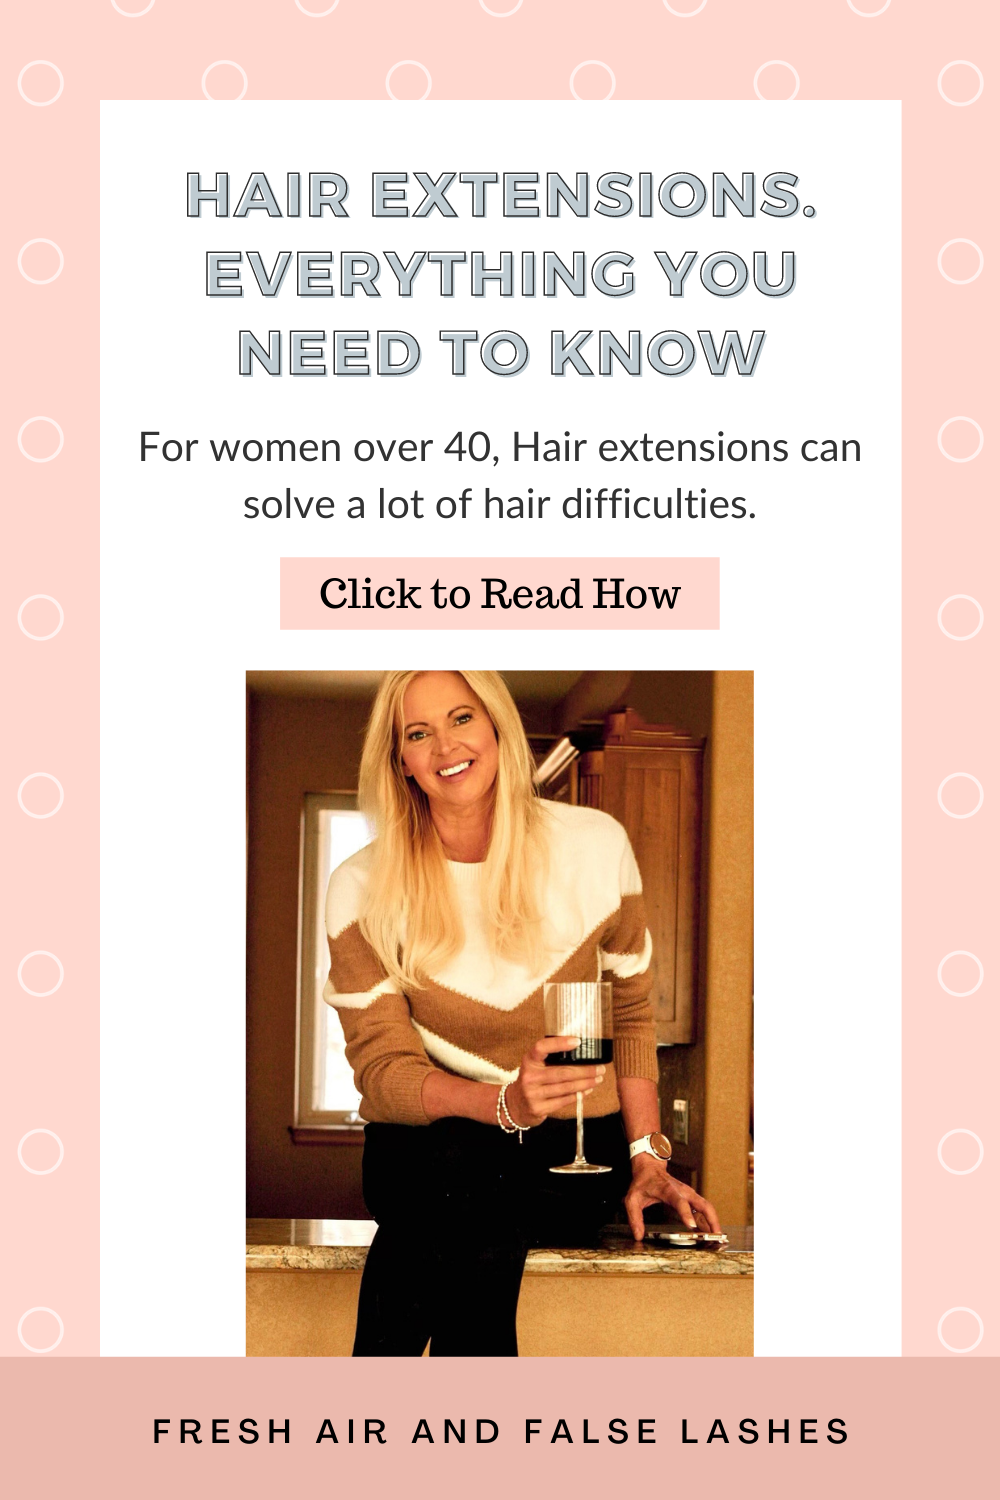 Hair extensions. Everything you need to know.